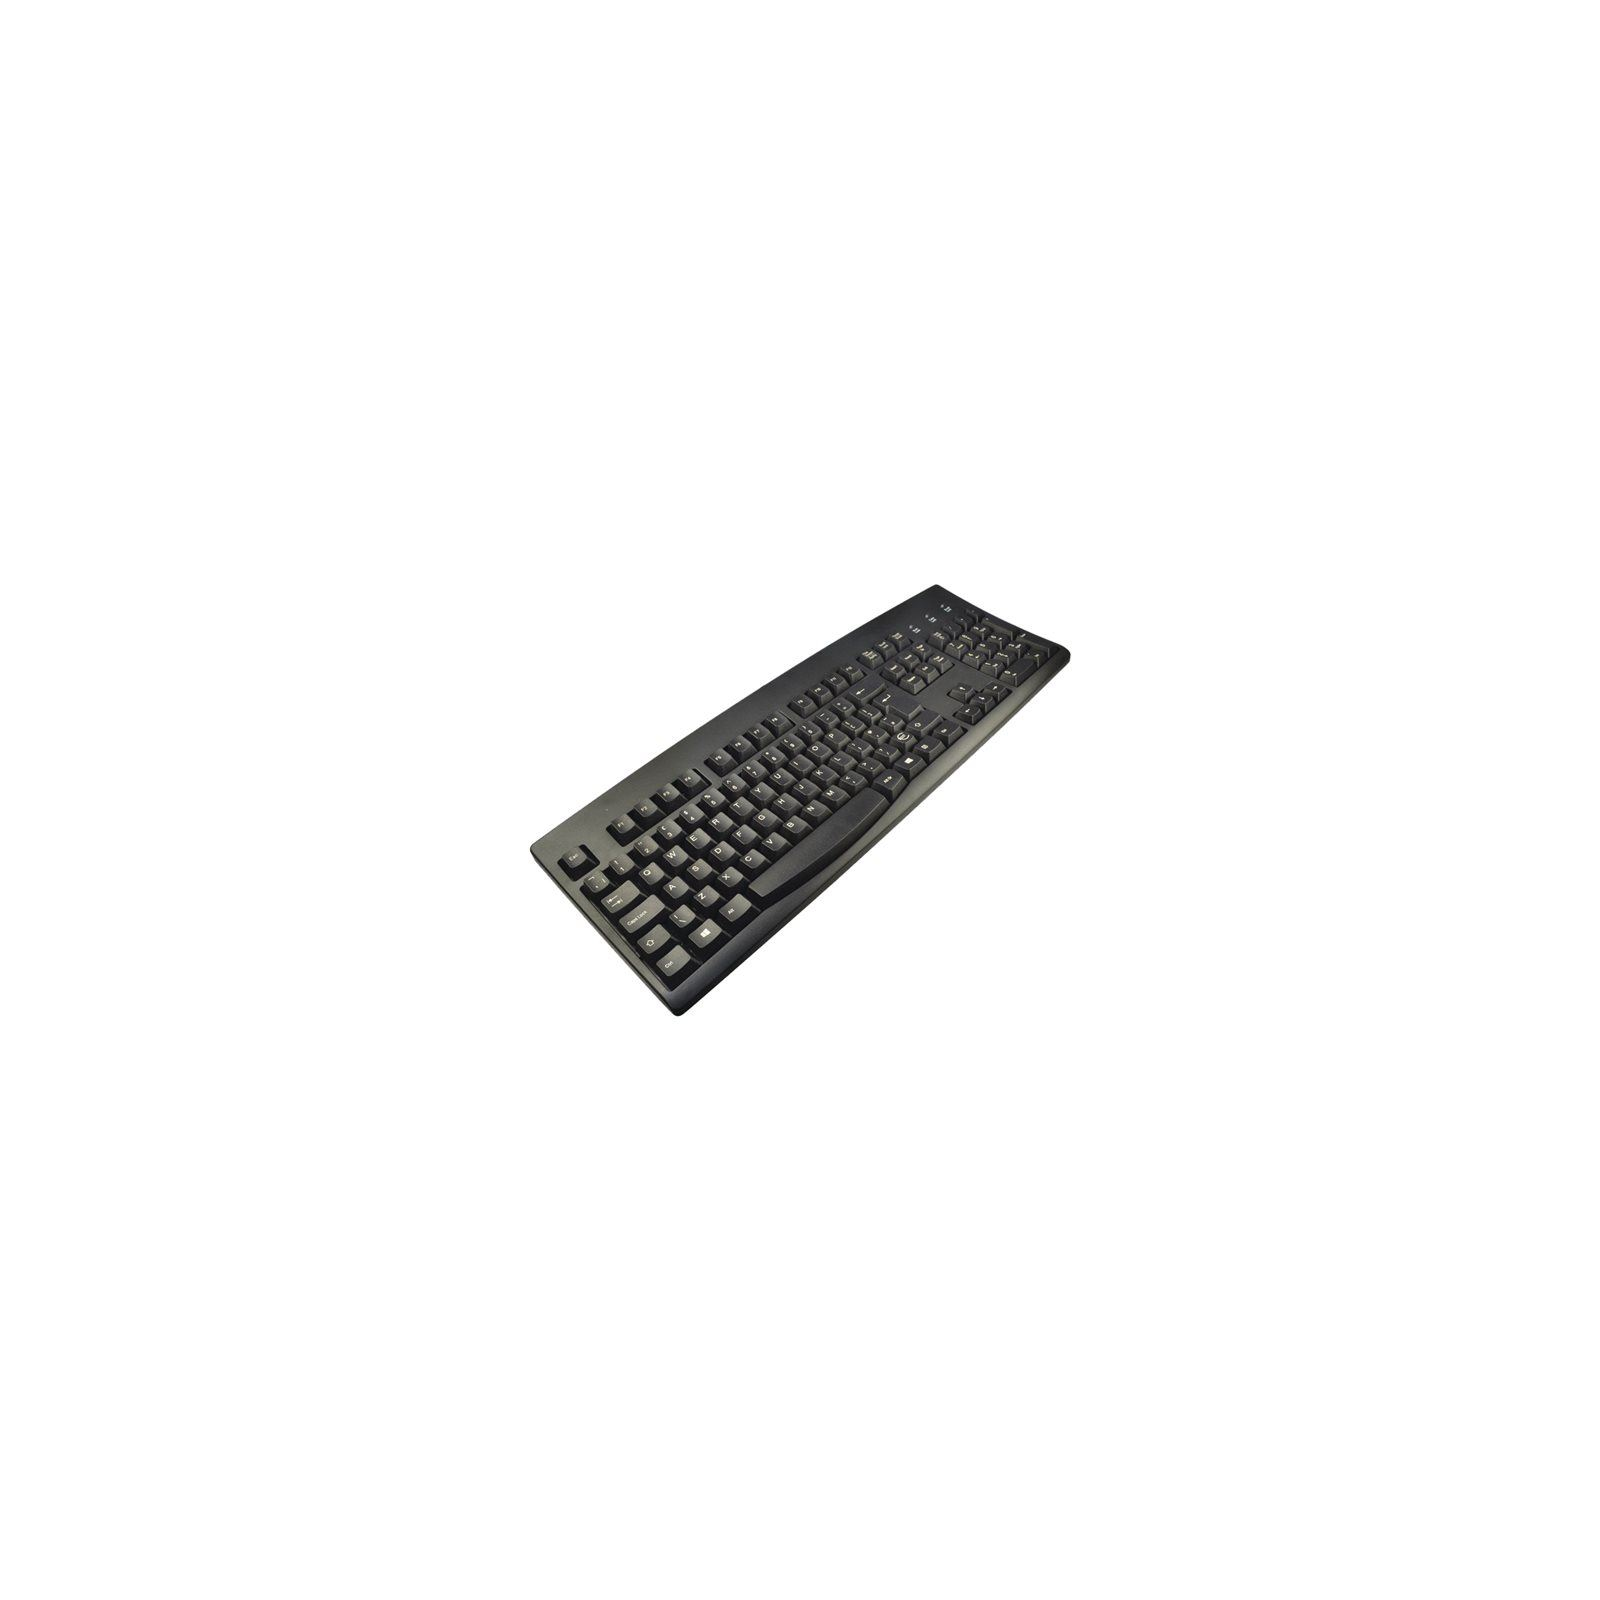 2-POWER KEY1001CN 105-KEY STANDARD USB KEYBOARD CHINESE